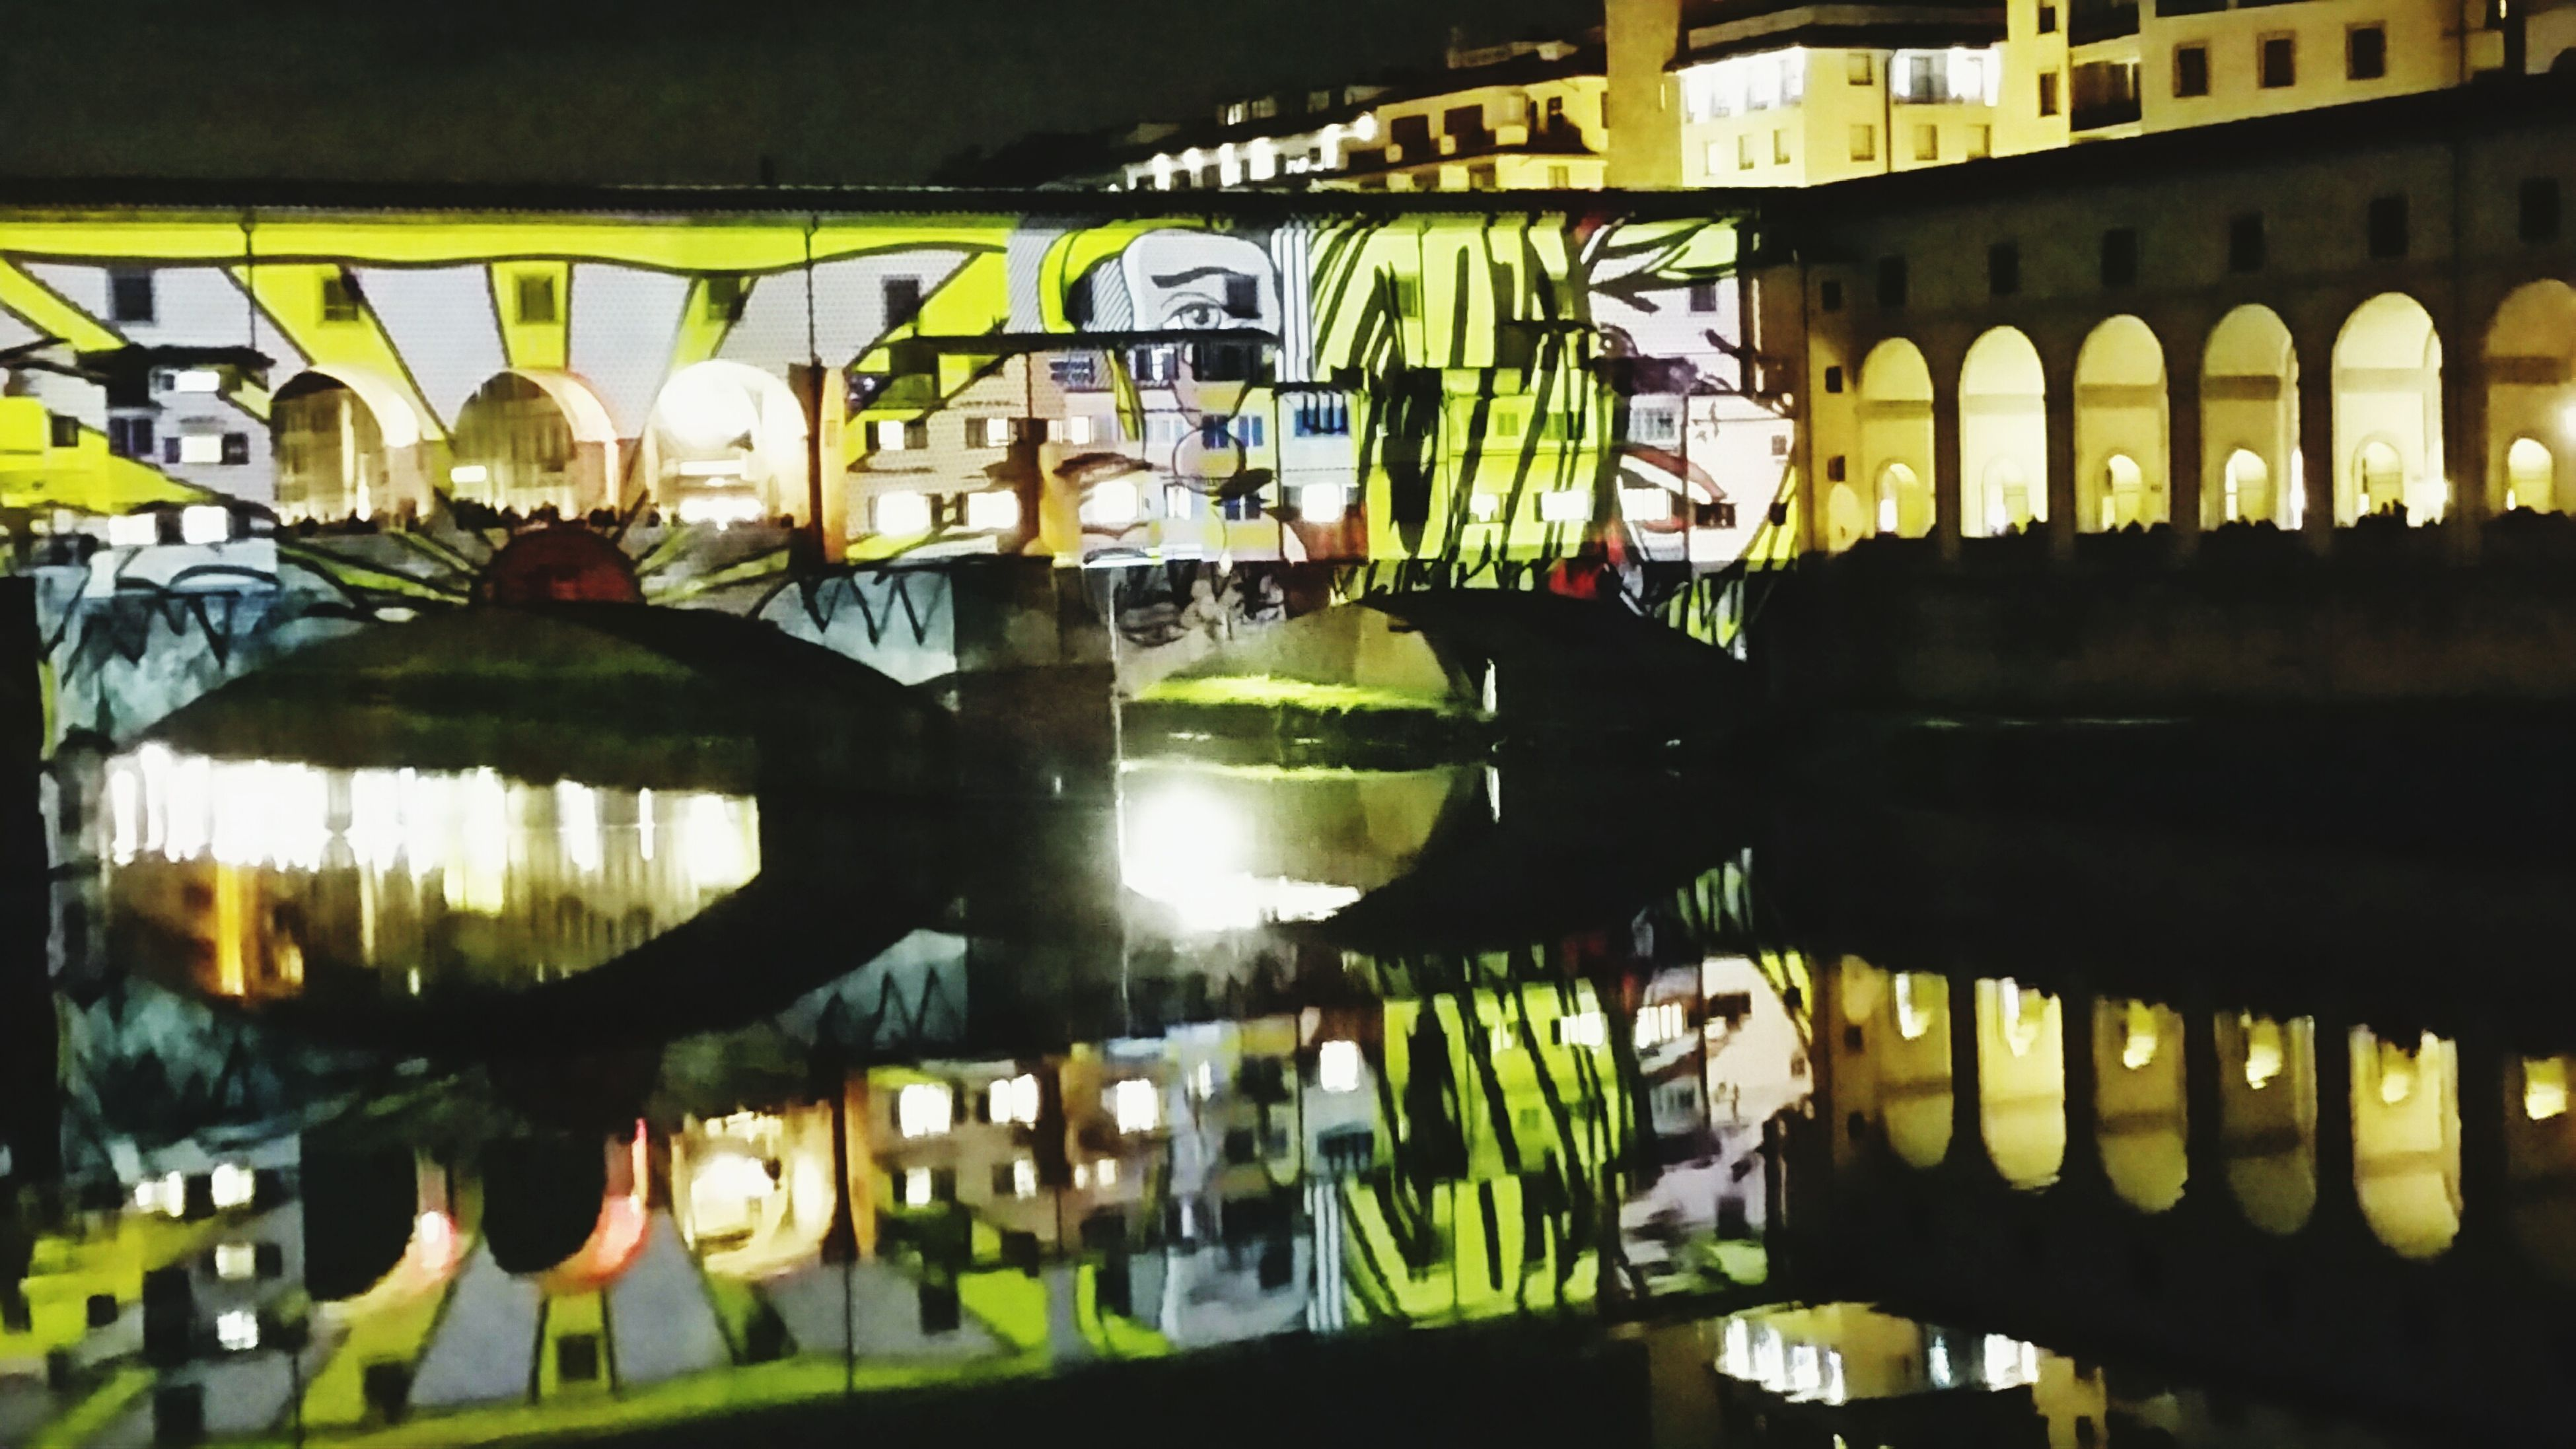 architecture, built structure, reflection, illuminated, arch, multi colored, in a row, water, building exterior, night, incidental people, indoors, lighting equipment, no people, decoration, pond, green color, yellow